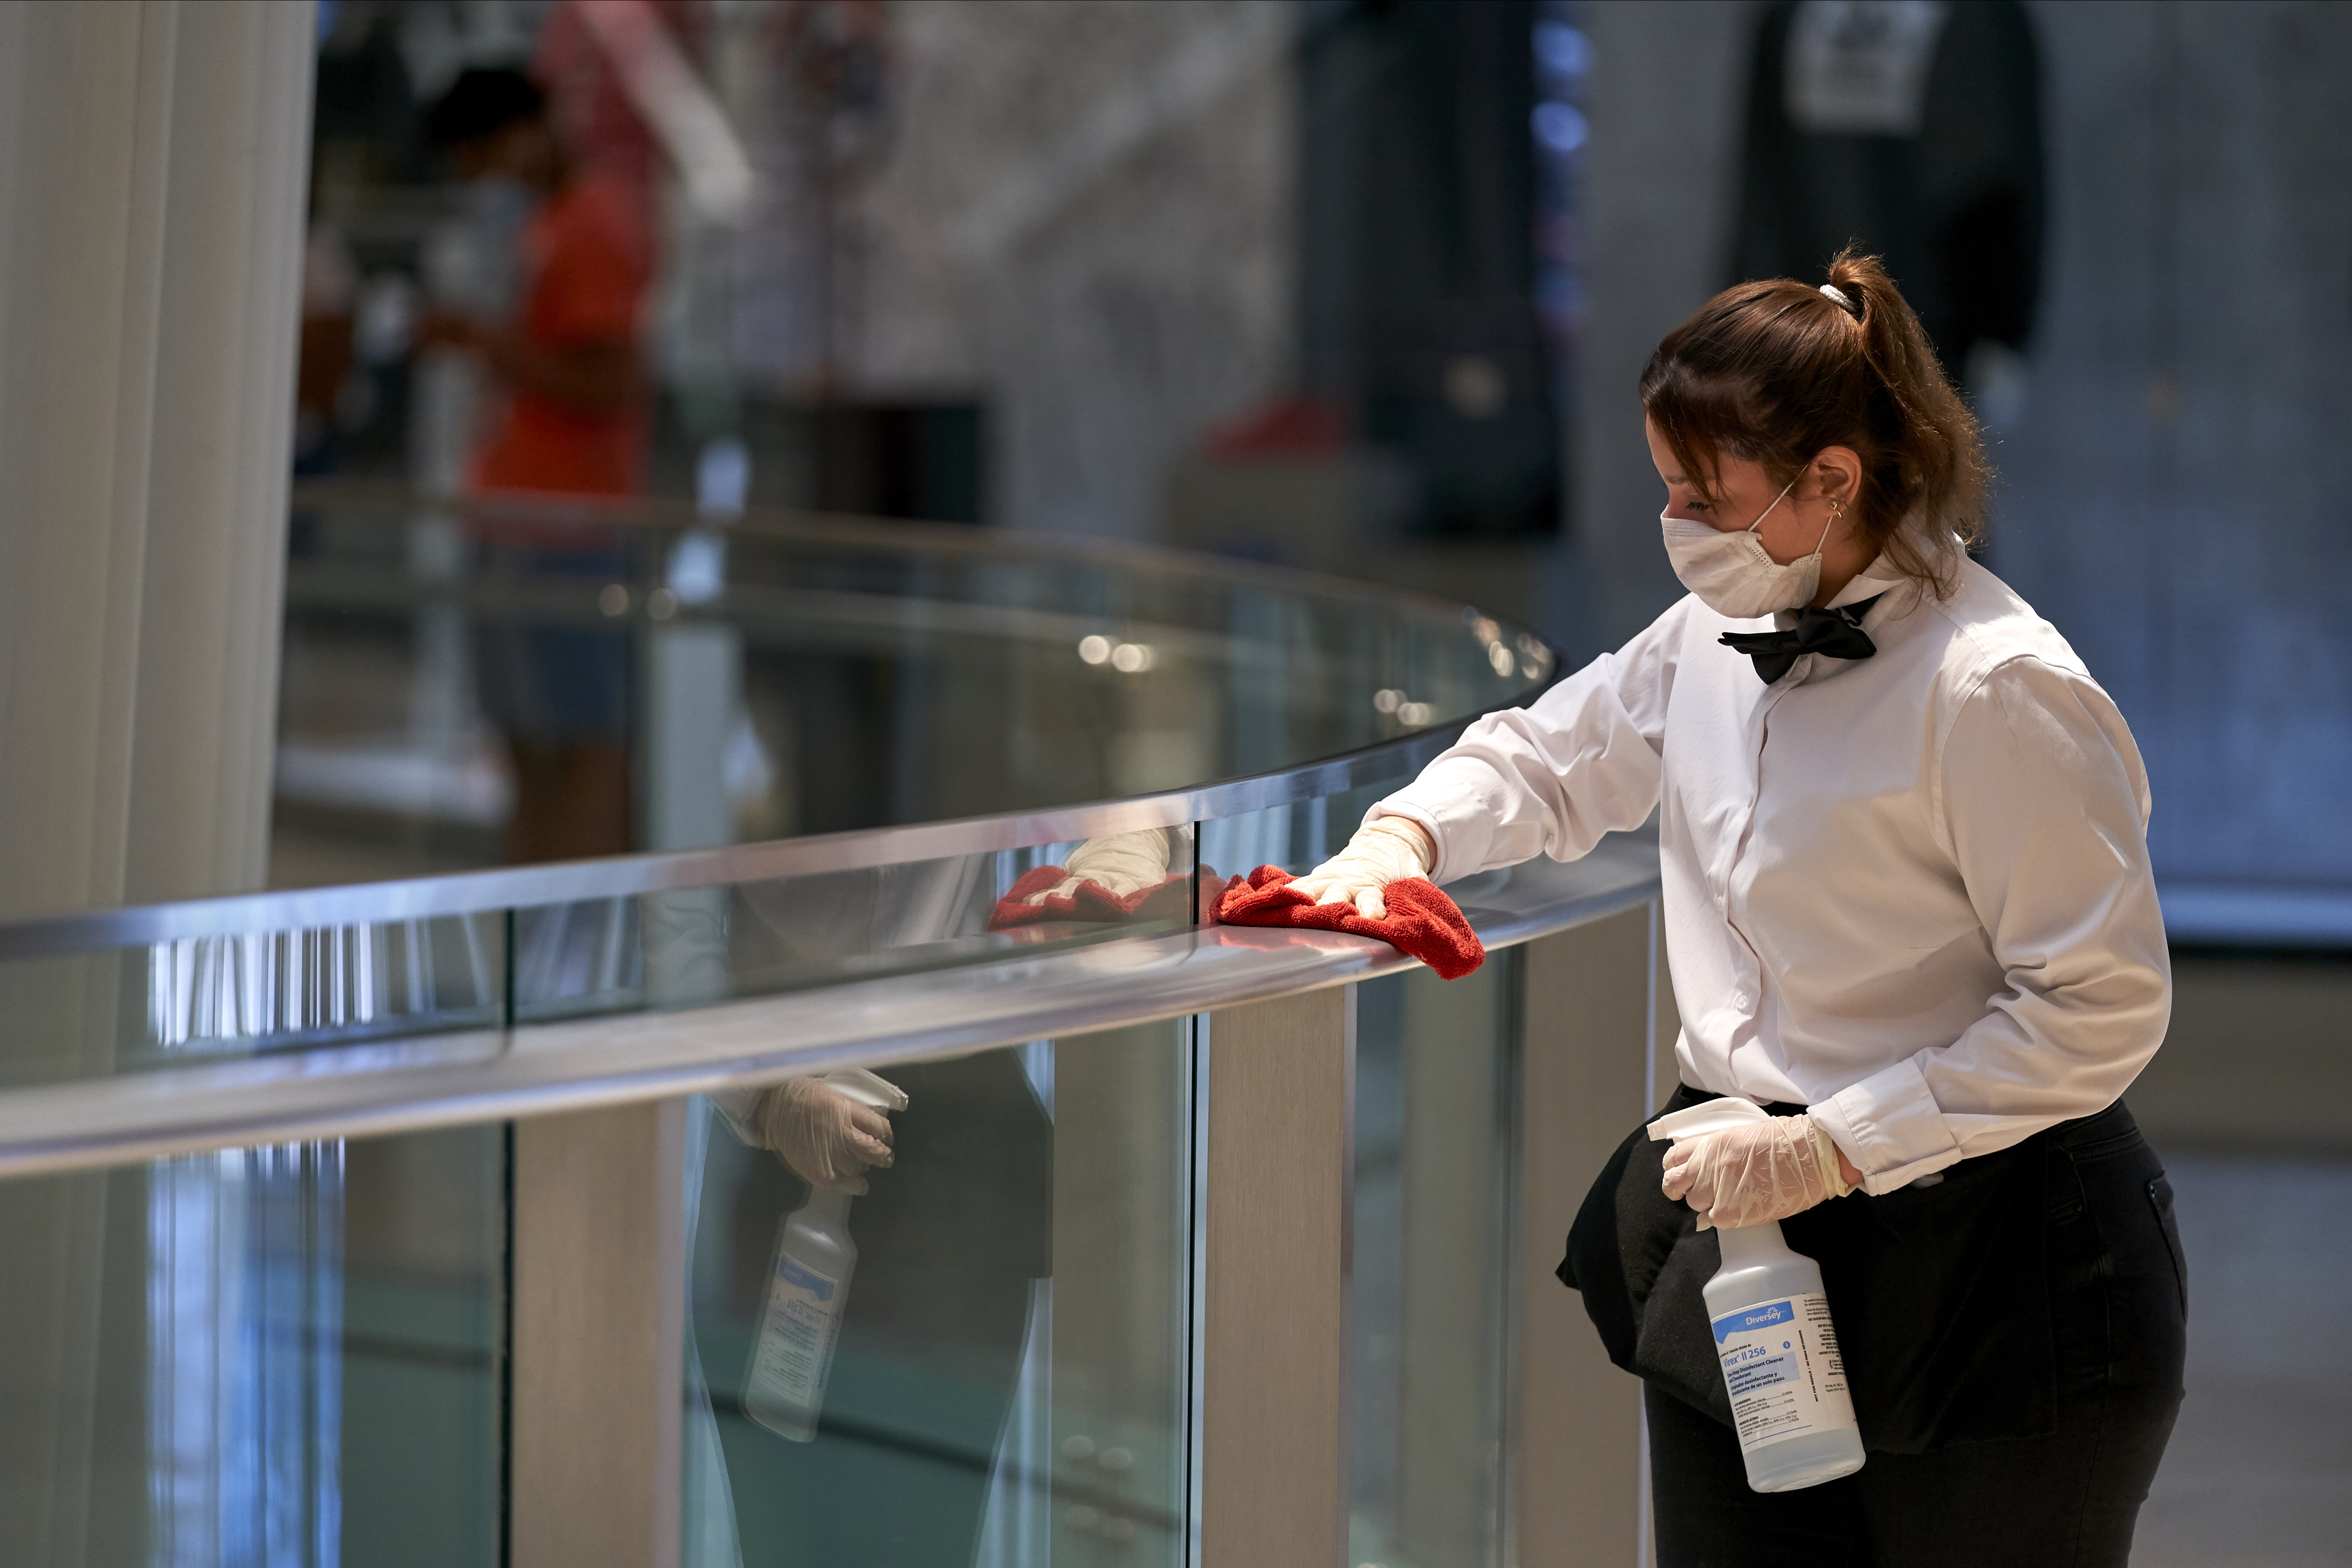 A worker disinfects hand rails at the Galleria Dallas mall in Dallas, Texas on May 4, 2020.